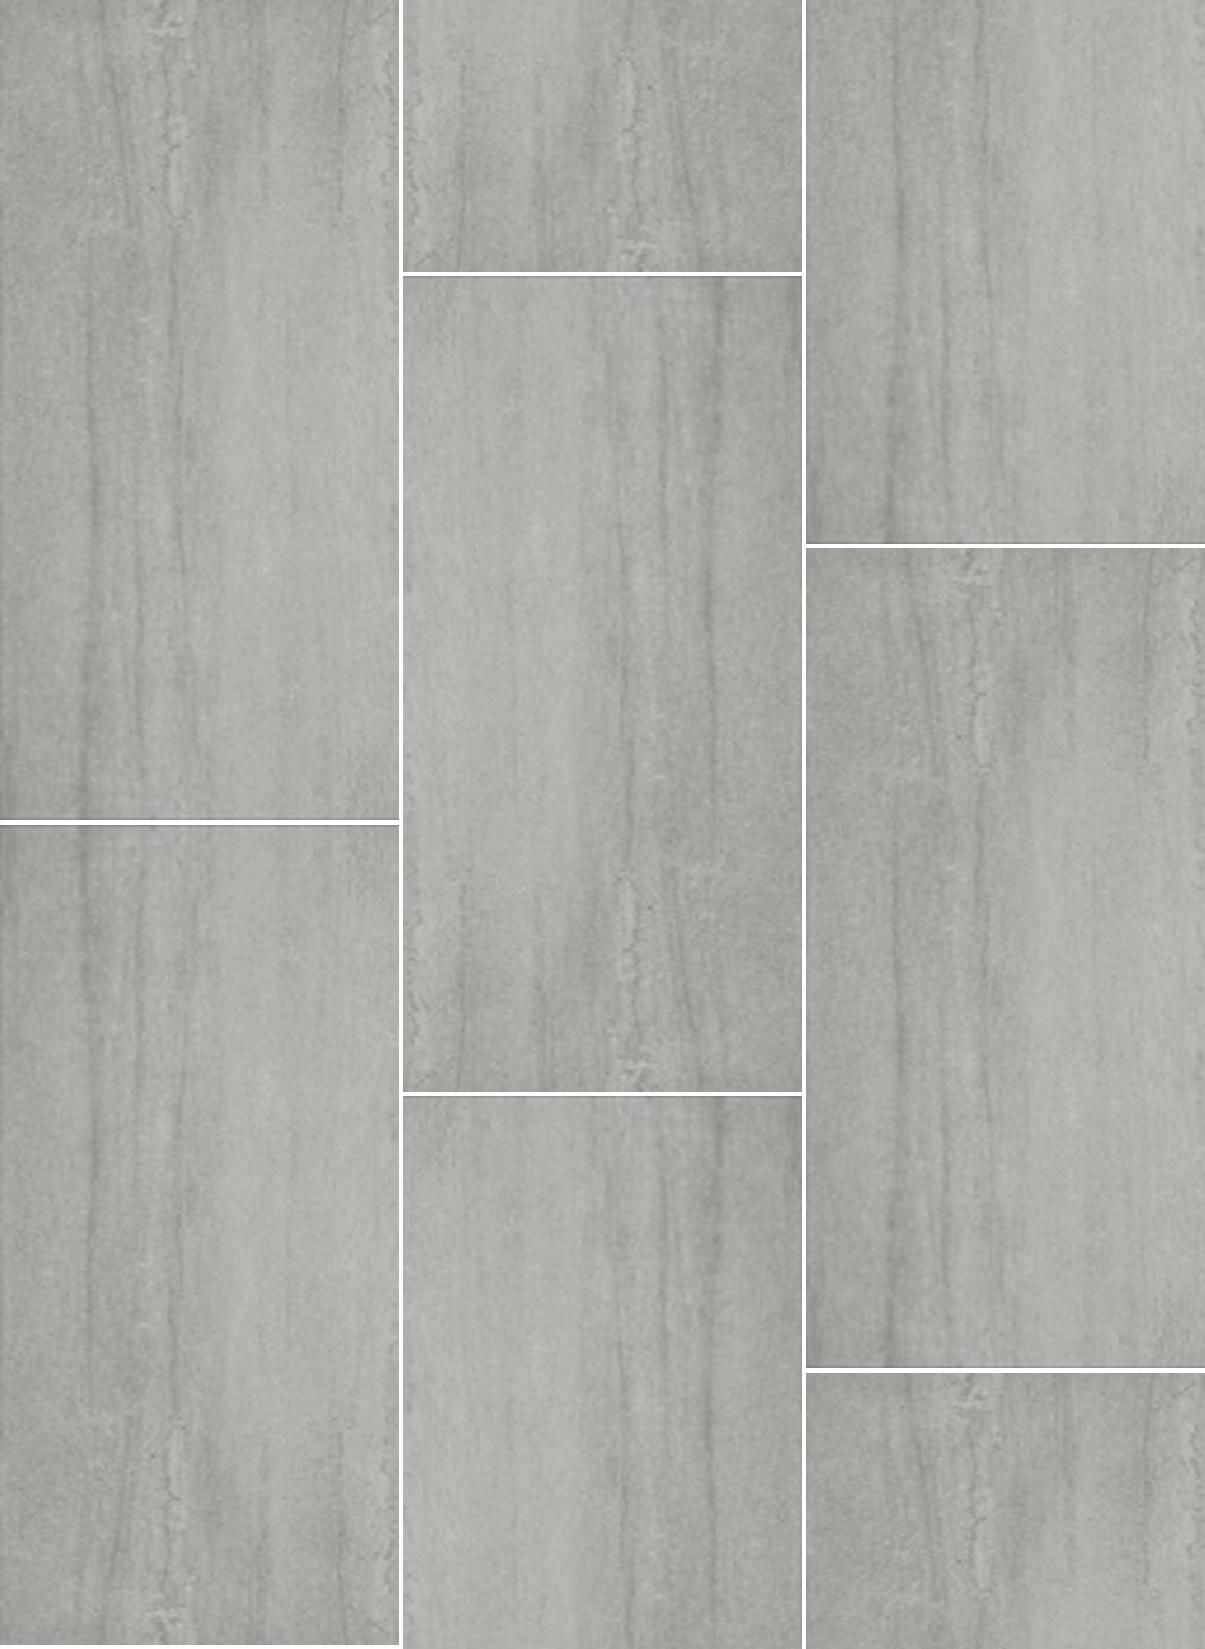 Grey Floor Tiles Bathroom Lglimitlessdesign Contest Grey 1224 Floor Tile Nick